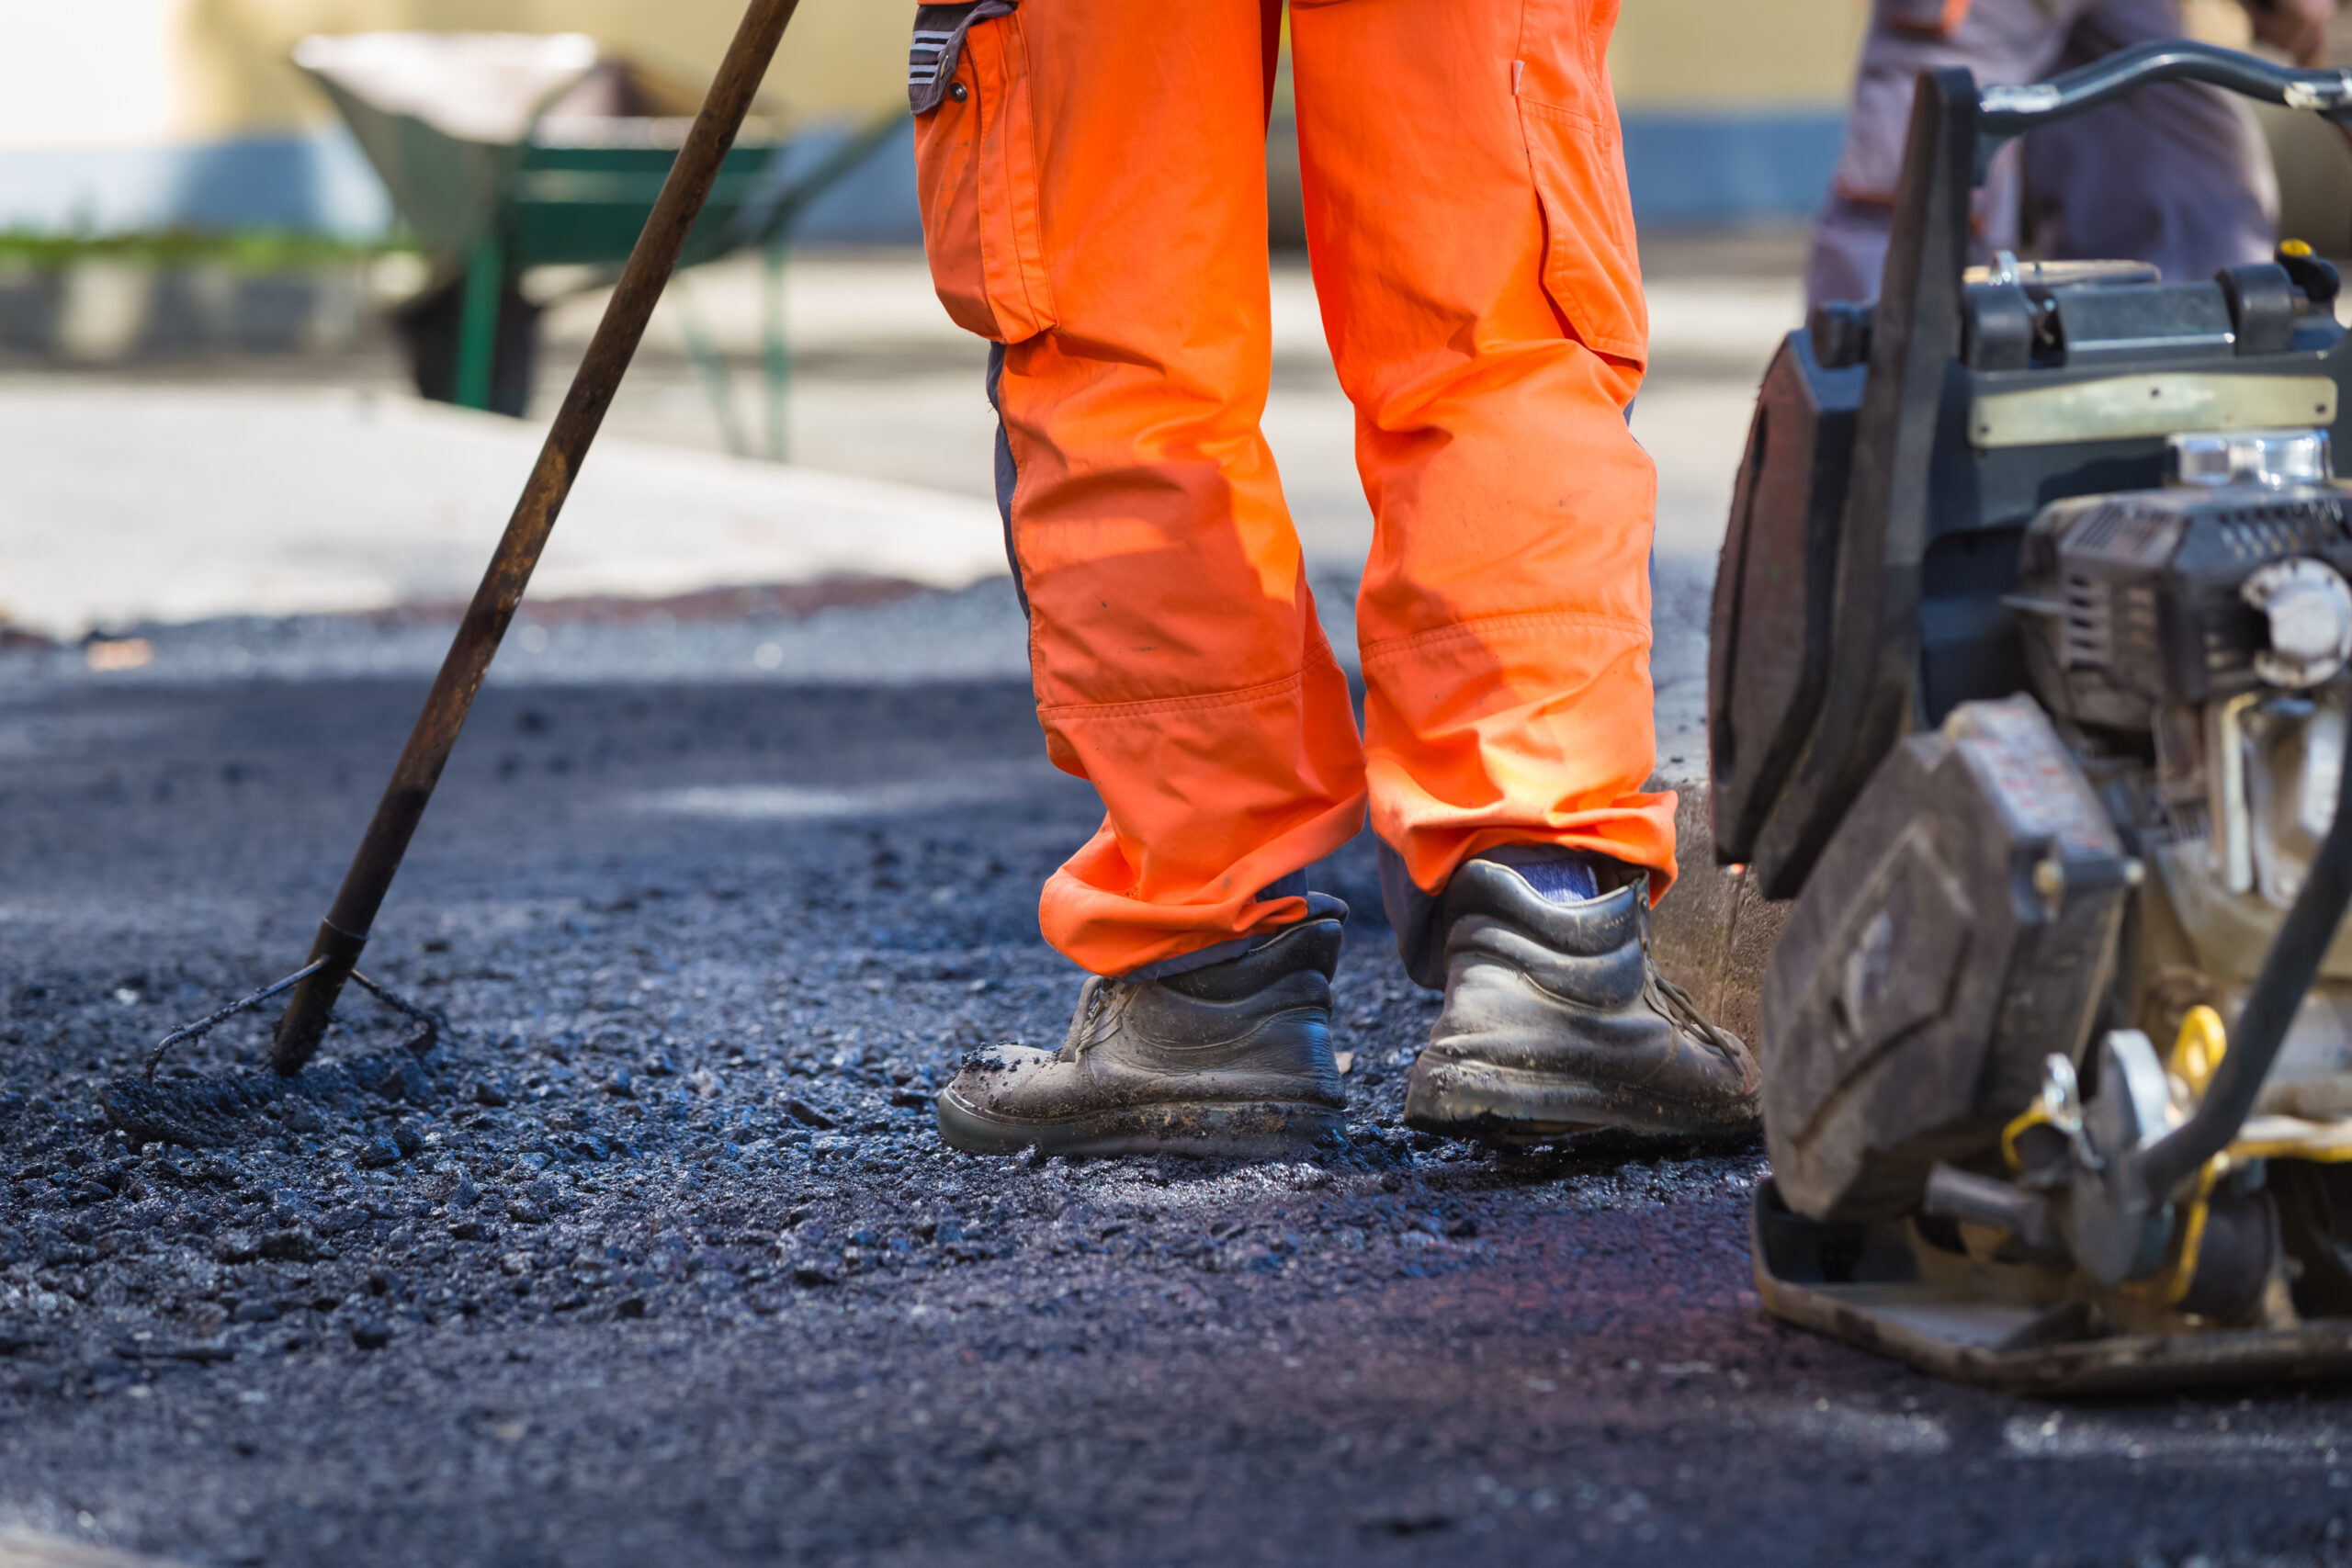 Get Road Surfacing Leads for Your Business